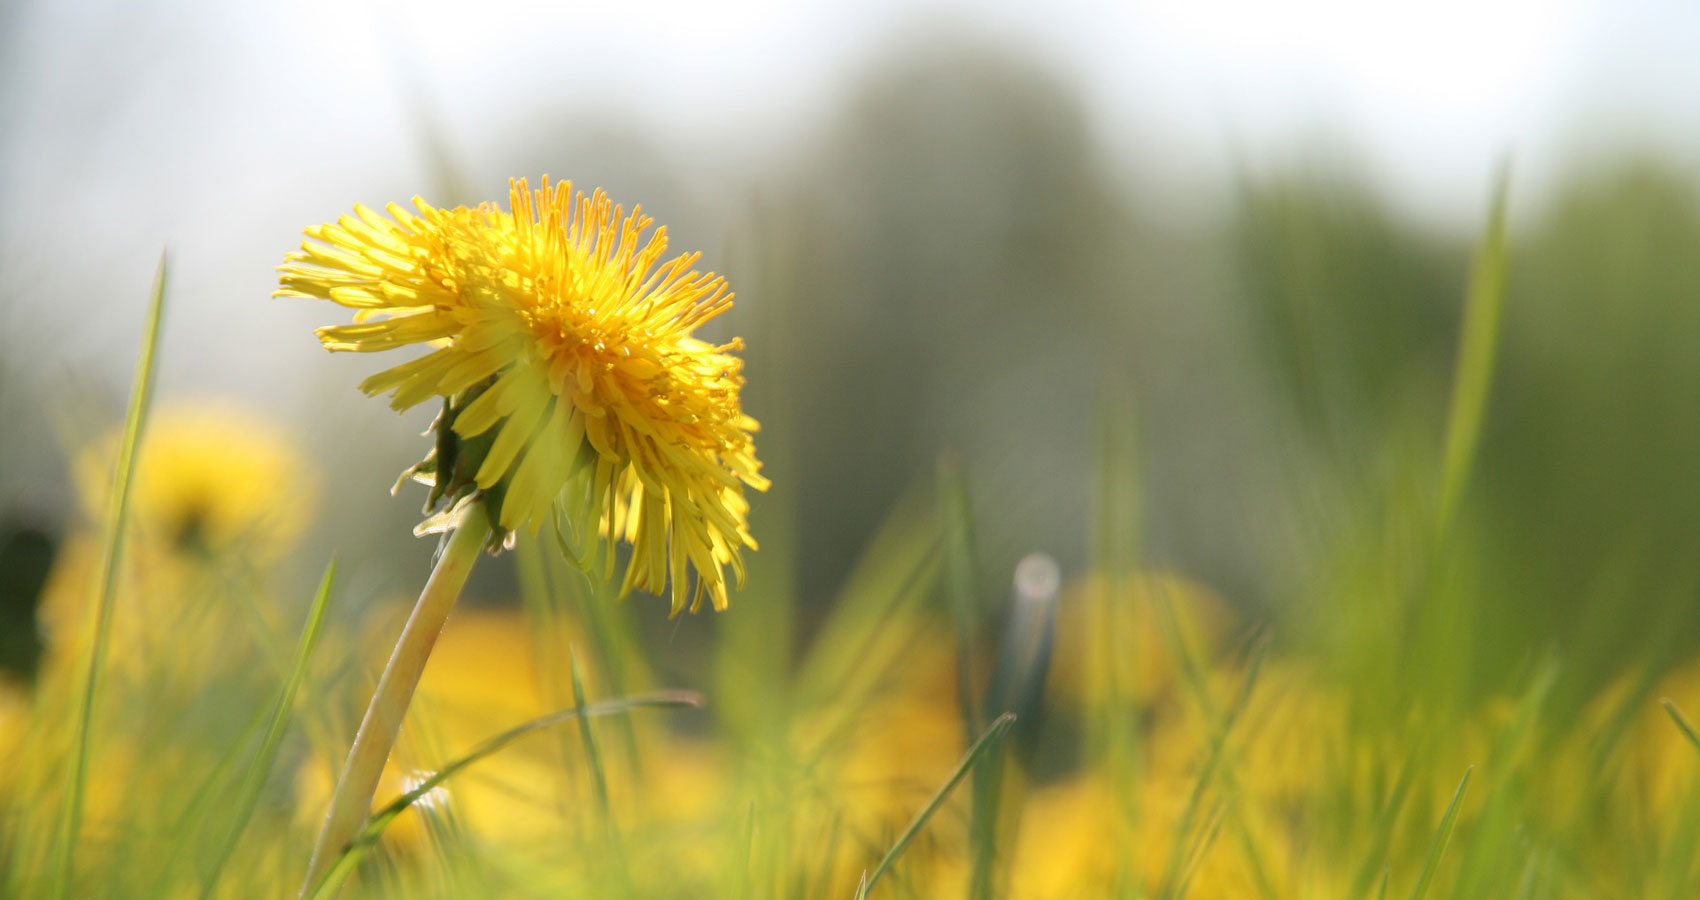 Dandelion Flower written by Aparna Reddy at Spillwords.com